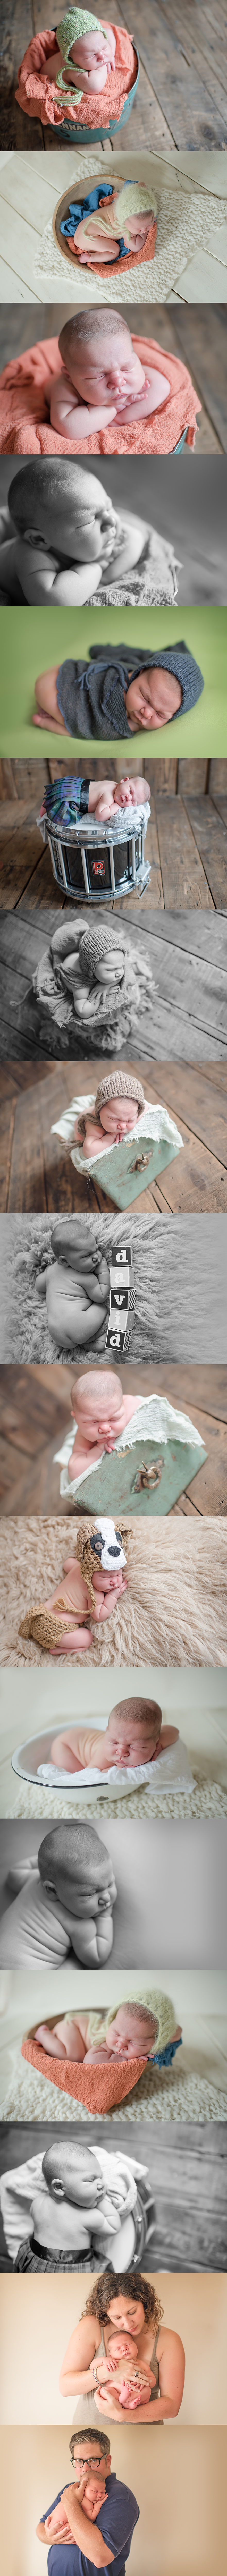 Tiny Newborns Photography in Pittsburgh PA. Baby photographer Jules Bradley is Pittsburgh